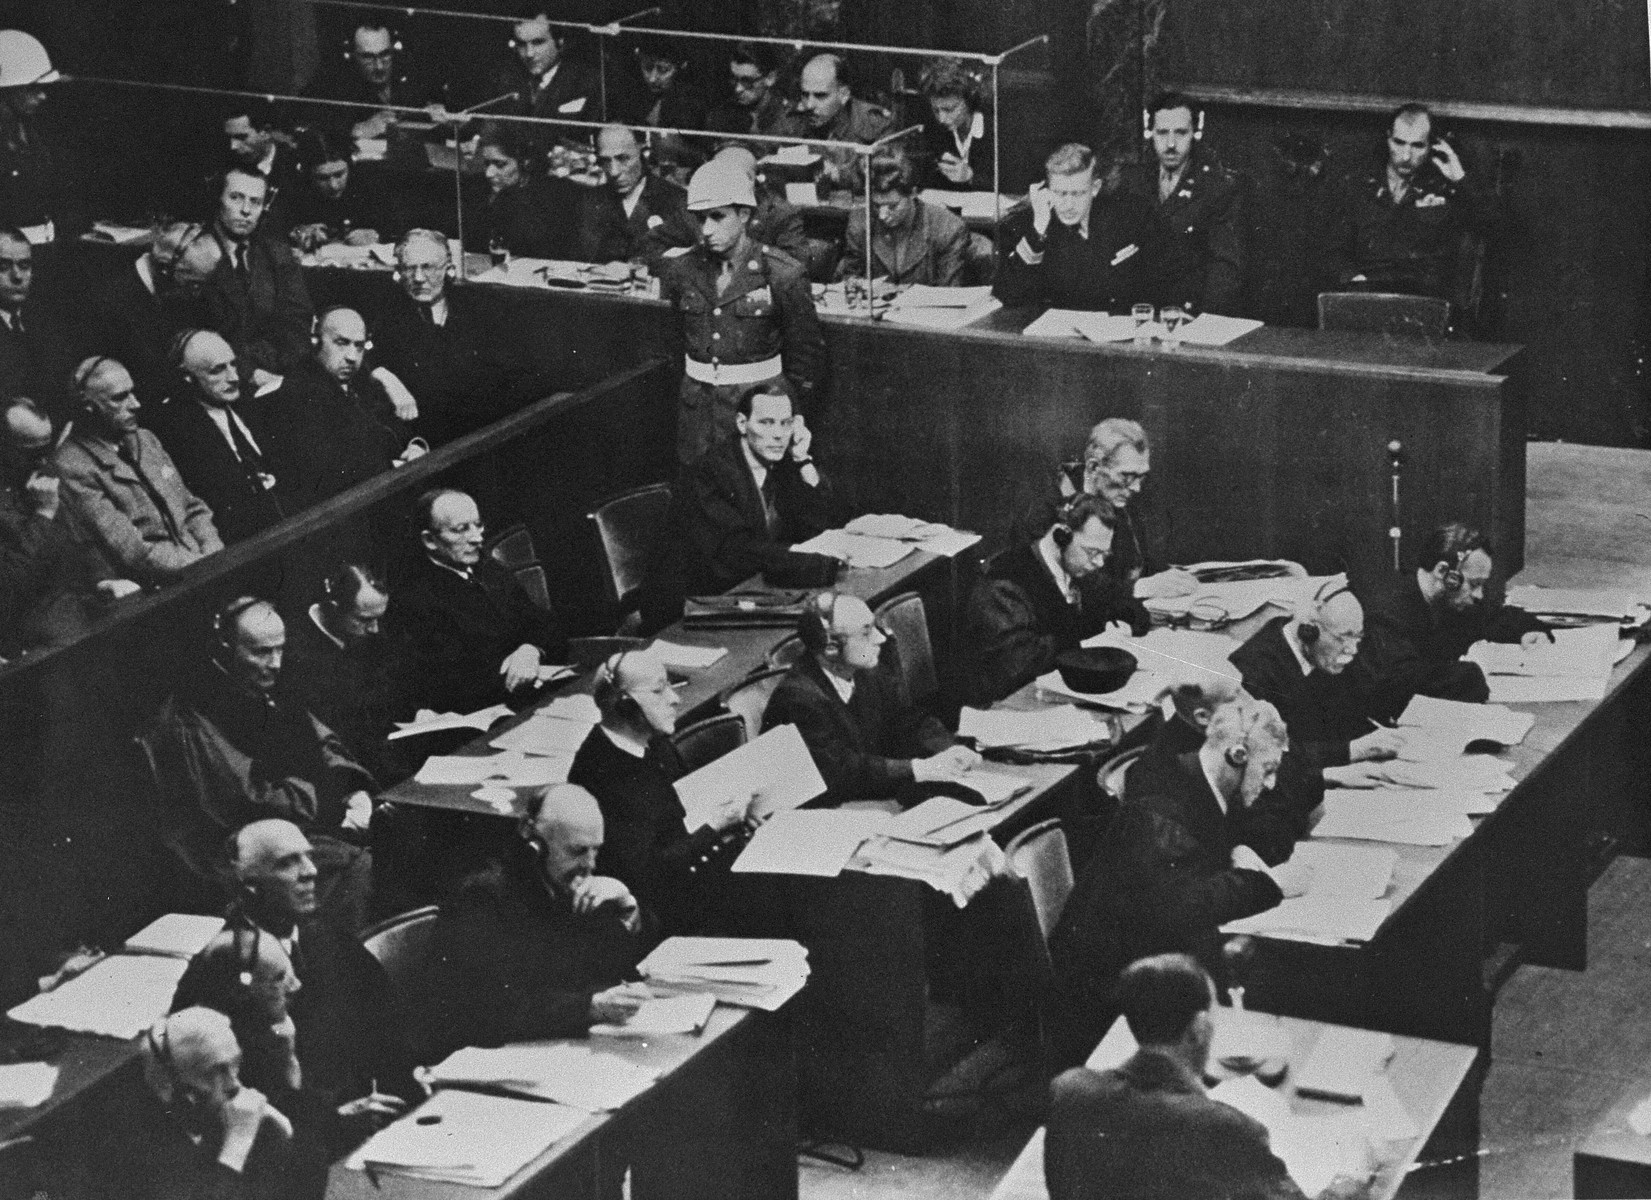 The defendants (left), their lawyers (middle), and interpreters (top) at the International Military Tribunal trial of war criminals at Nuremberg.